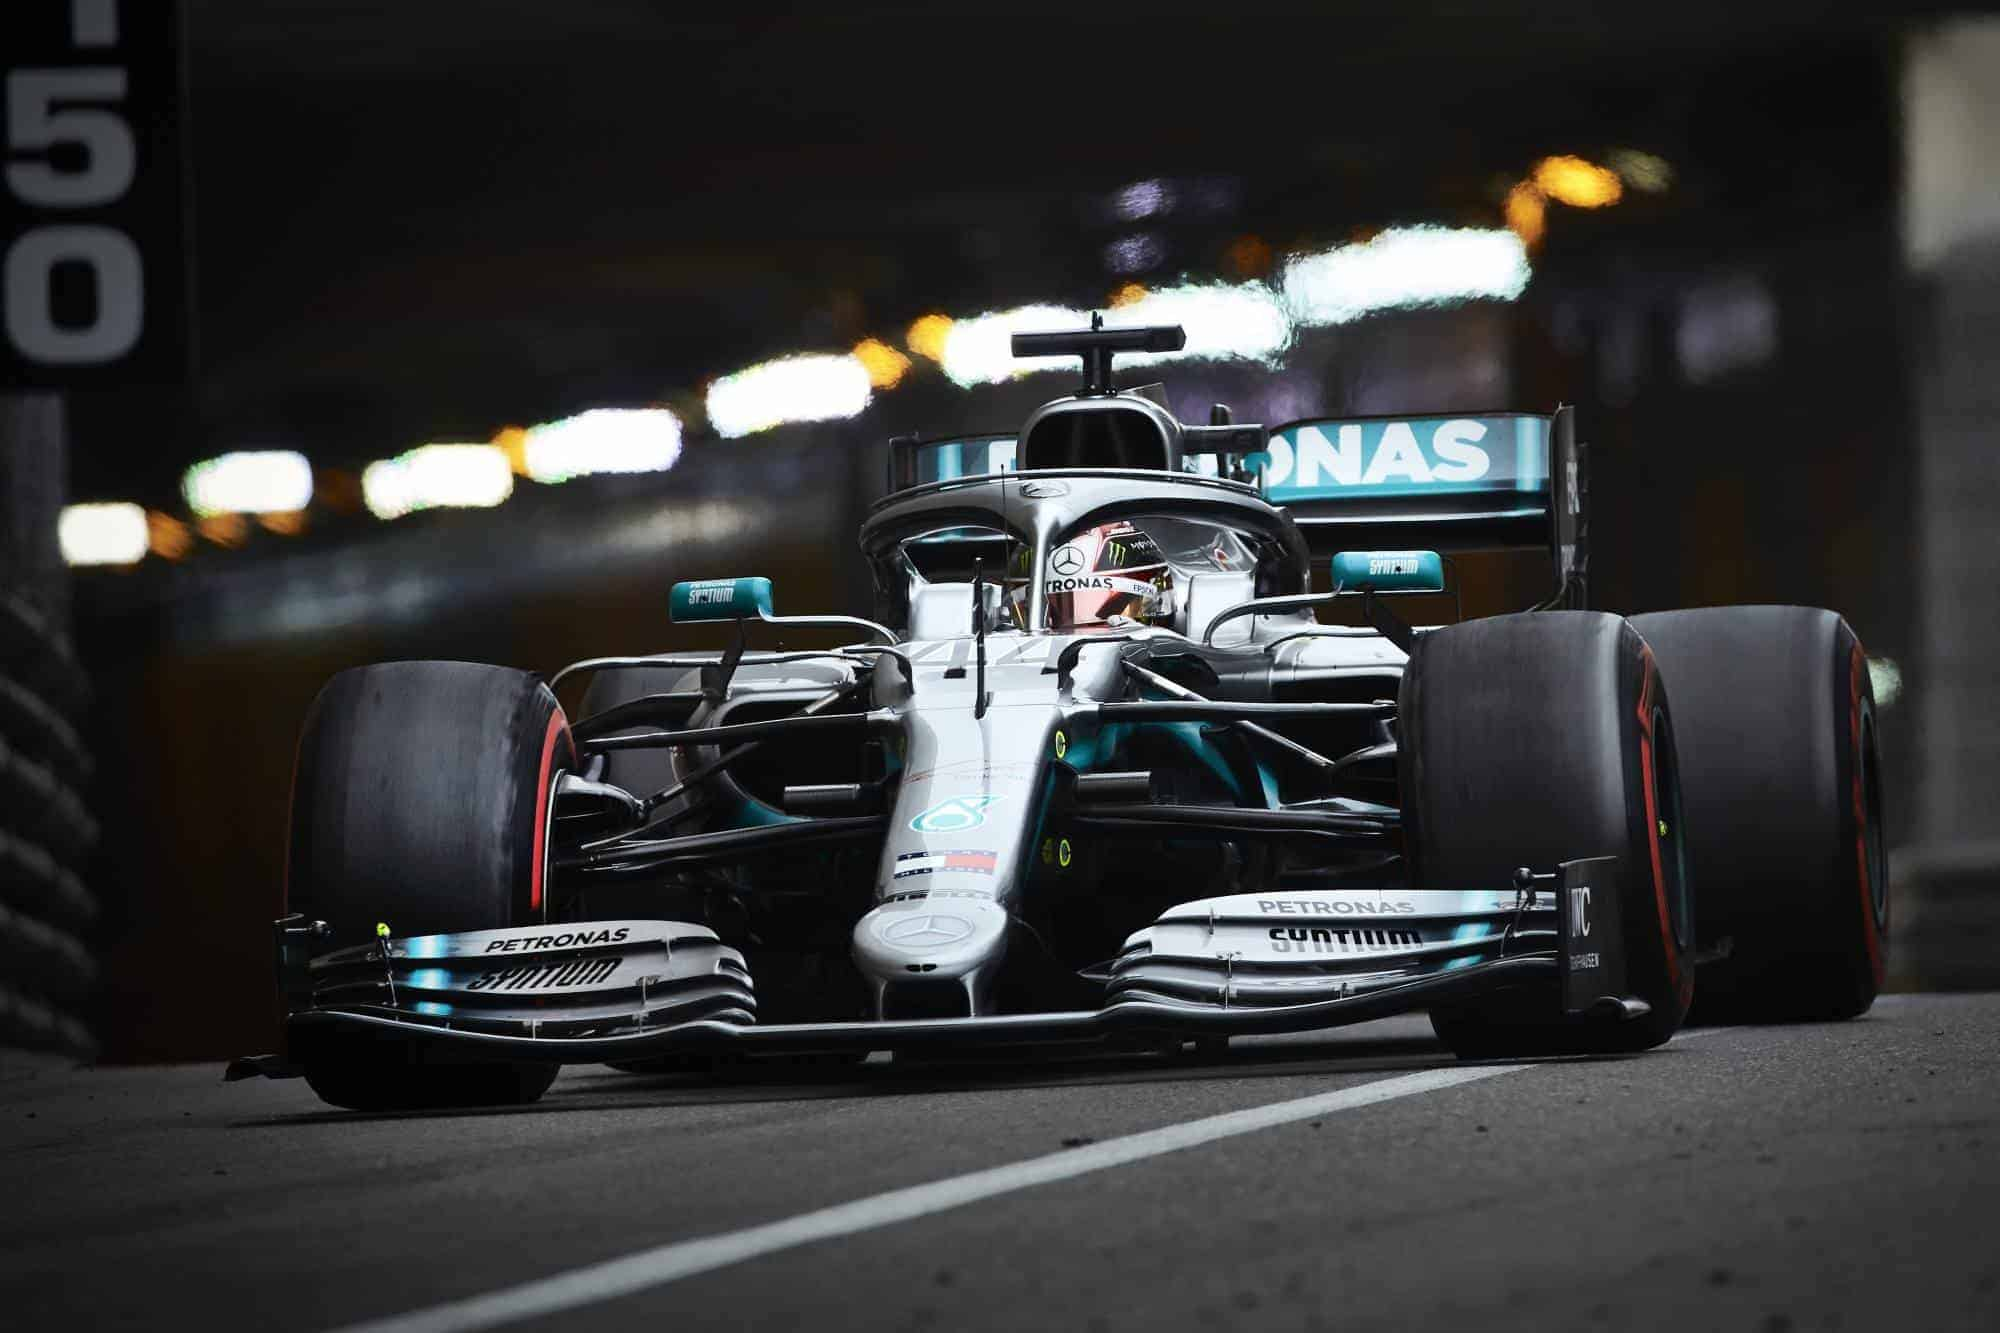 Lewis Hamilton Mercedes F1 W10 Monaco GP F1 2019 tunnel exit Photo Daimler